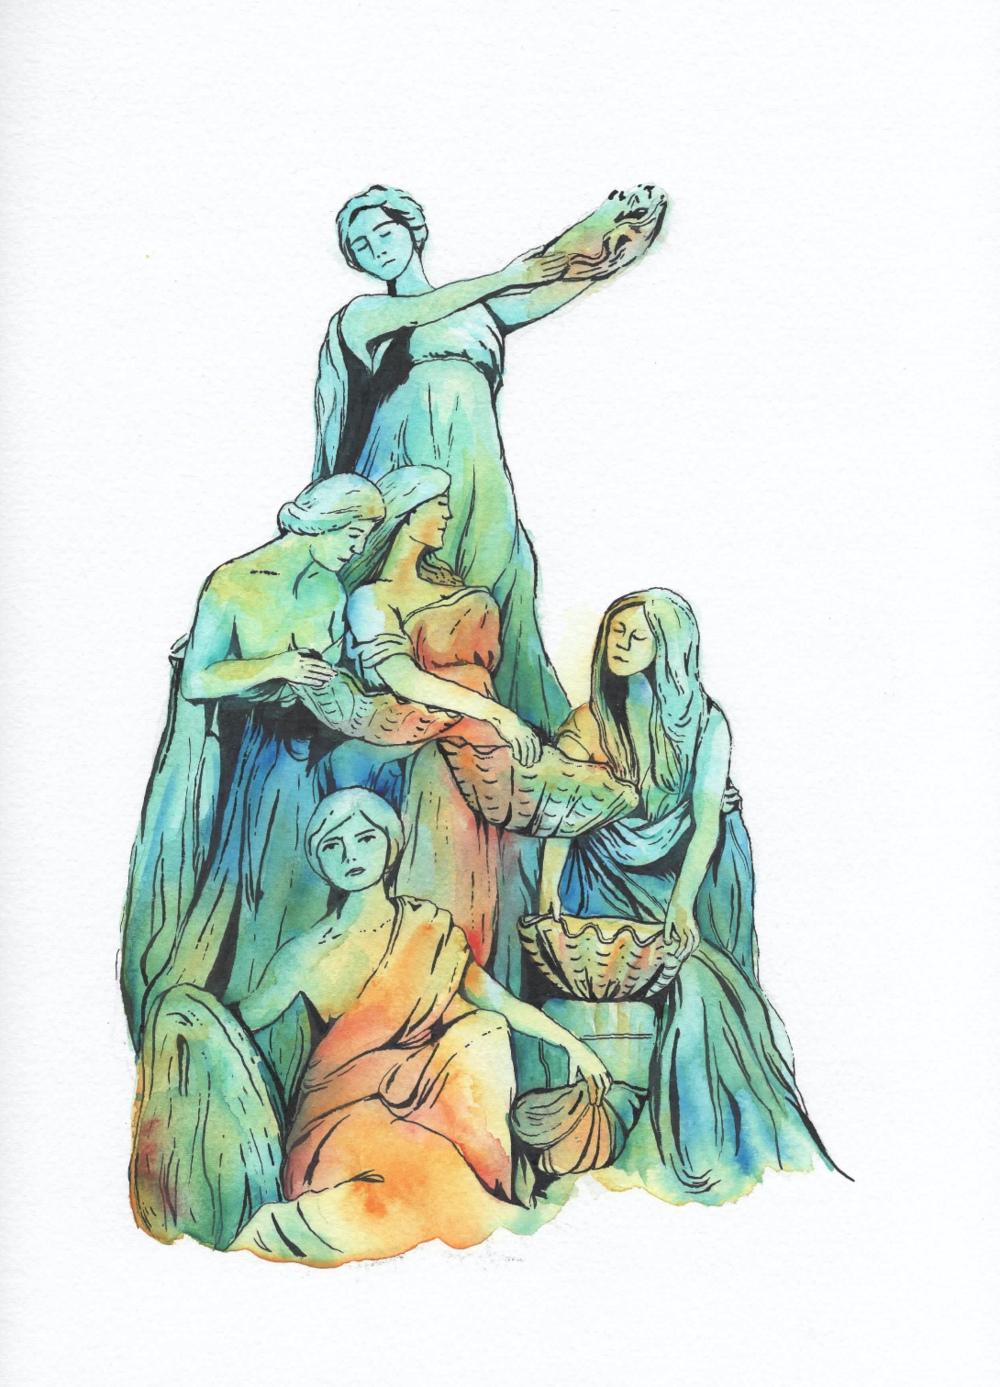 Screen Shot 2017-09-11 at 7.31.19 PM.png